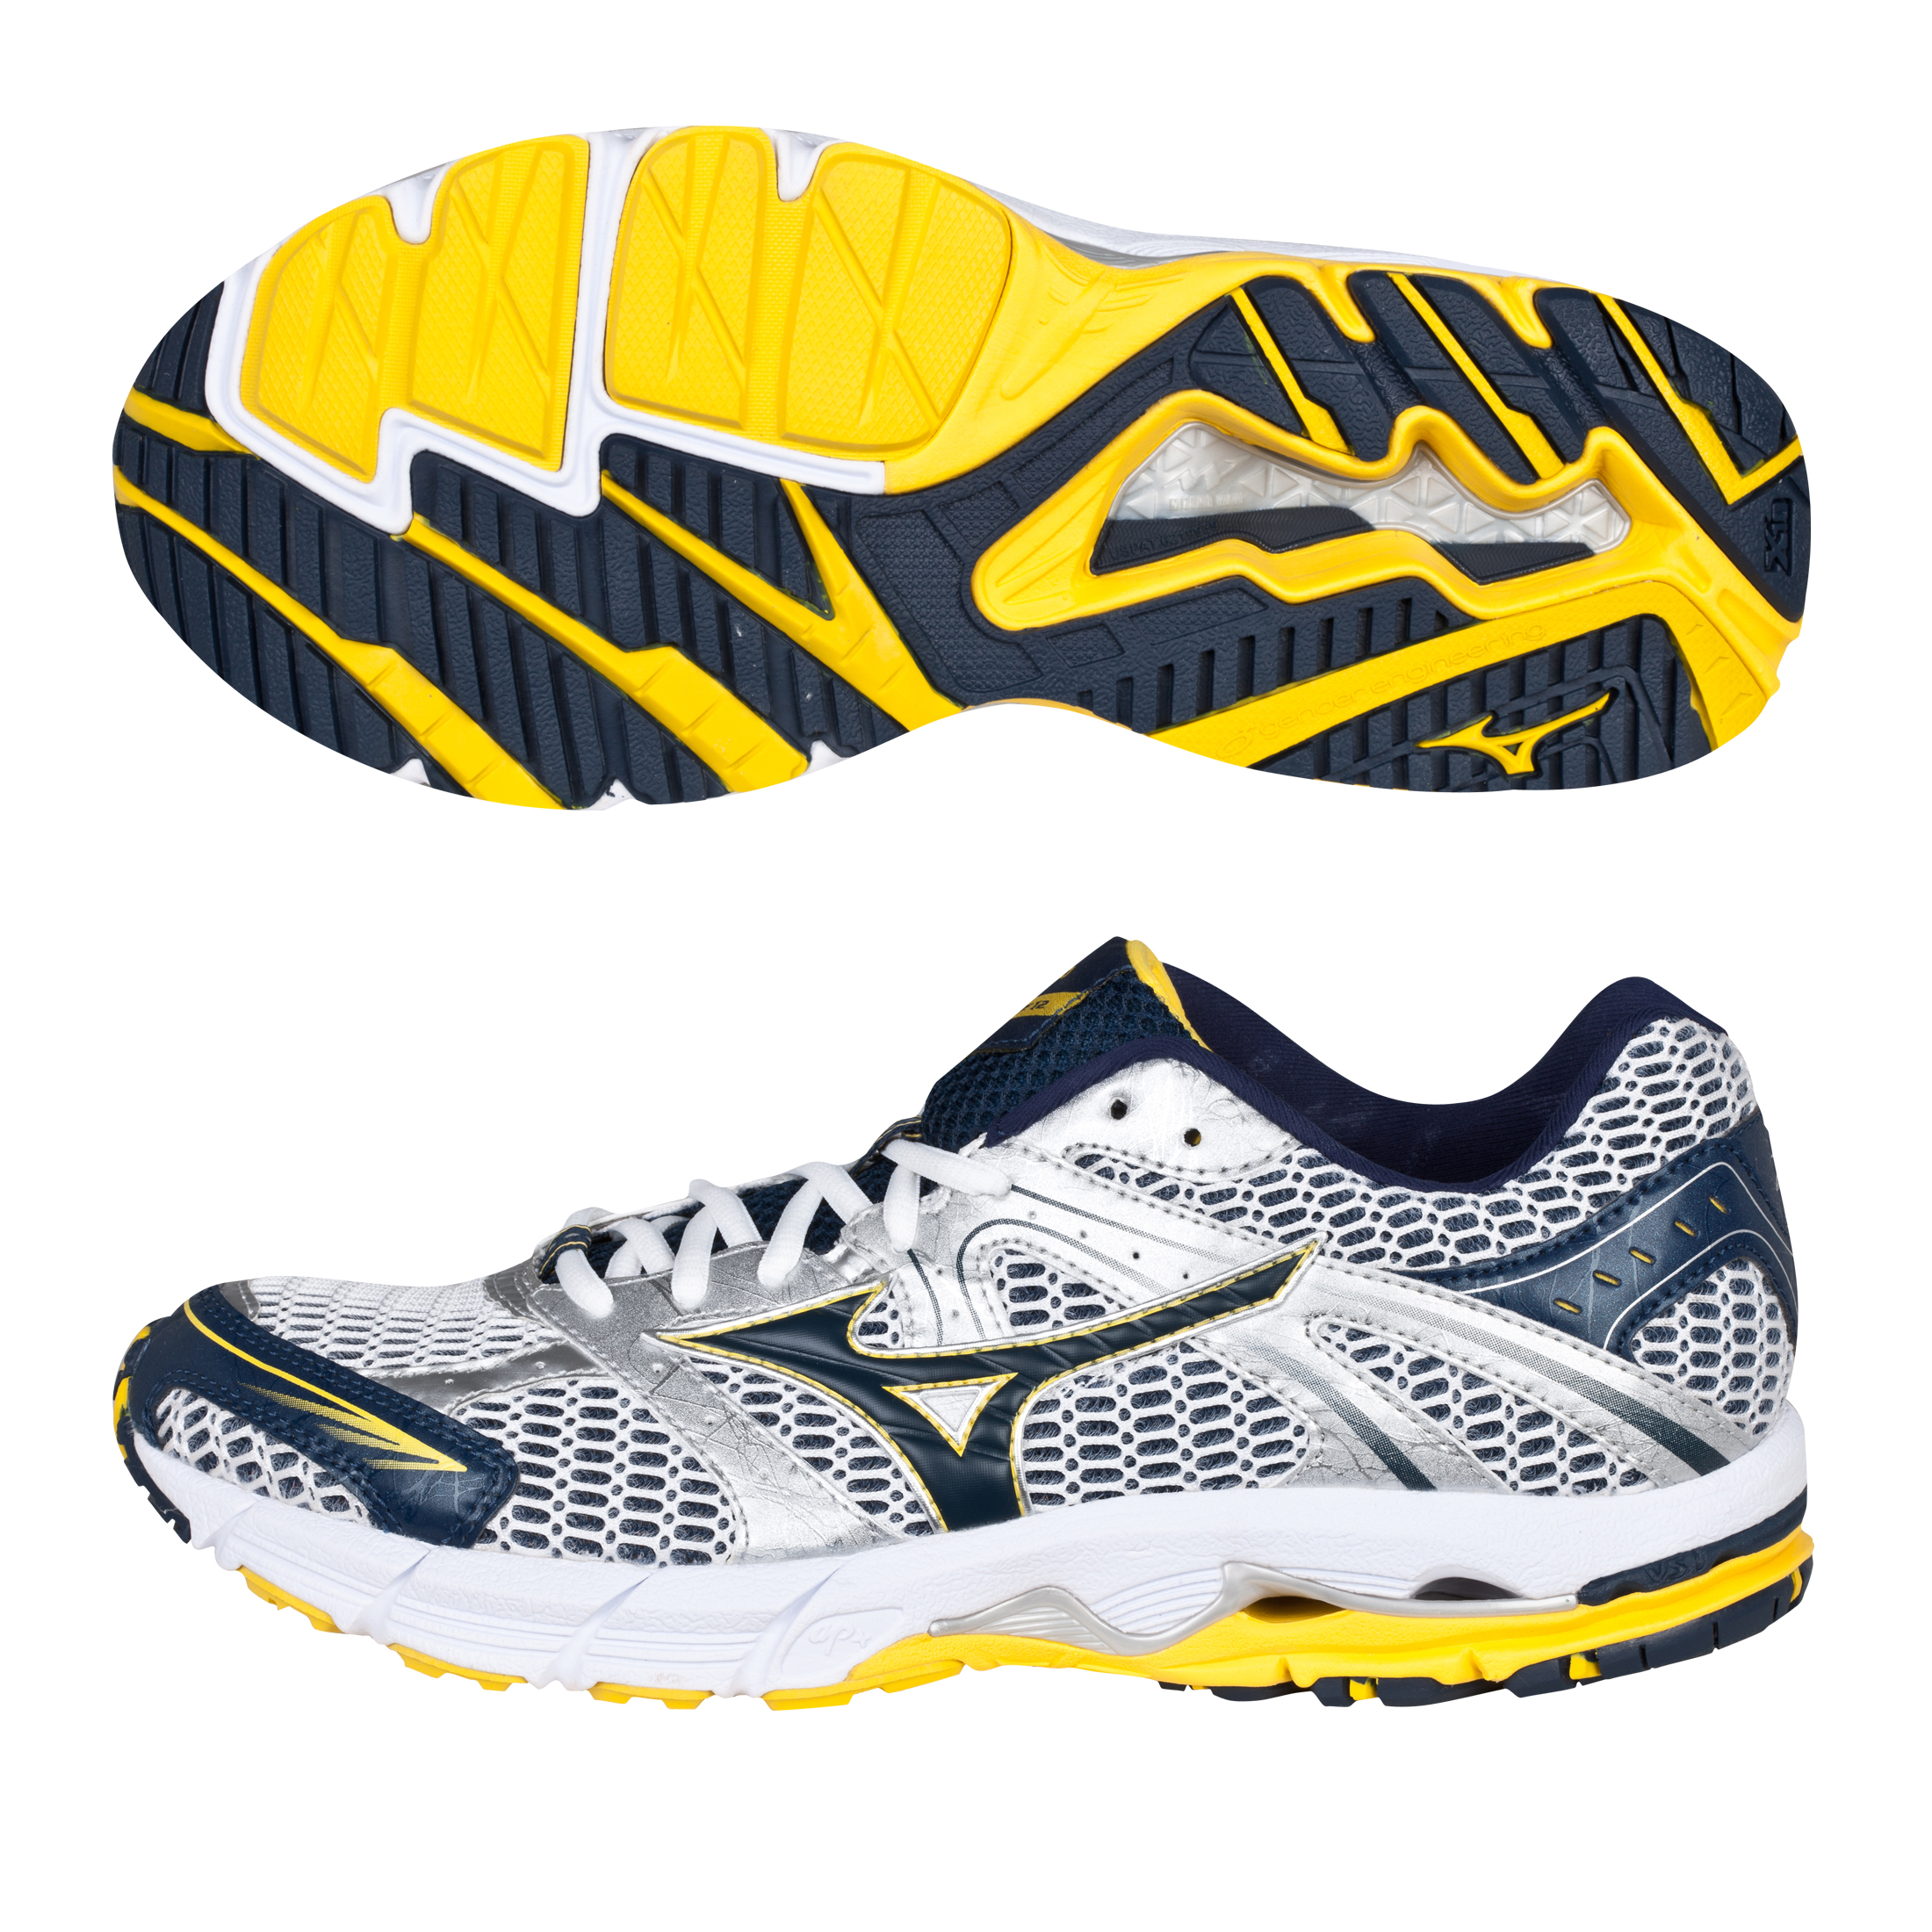 Mizuno Wave Alchemy 12 Trainer - White/Dress Blue/Cyber Yellow